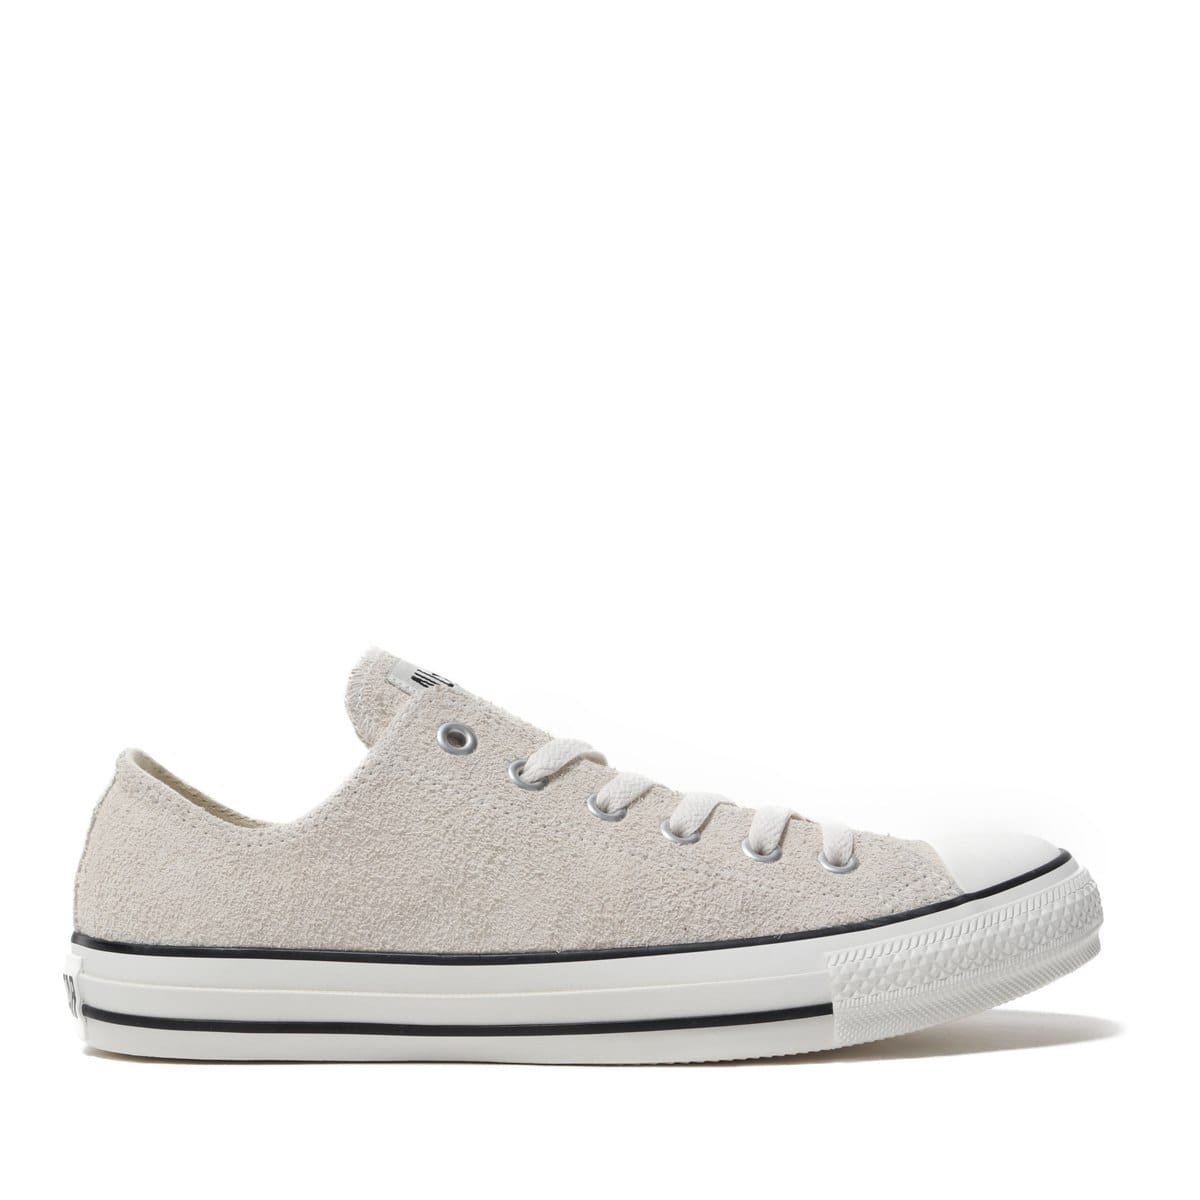 """""""CONVERSE SUEDE ALL STAR WORNOUT OX NATURAL 19SS-I""""_photo_2"""